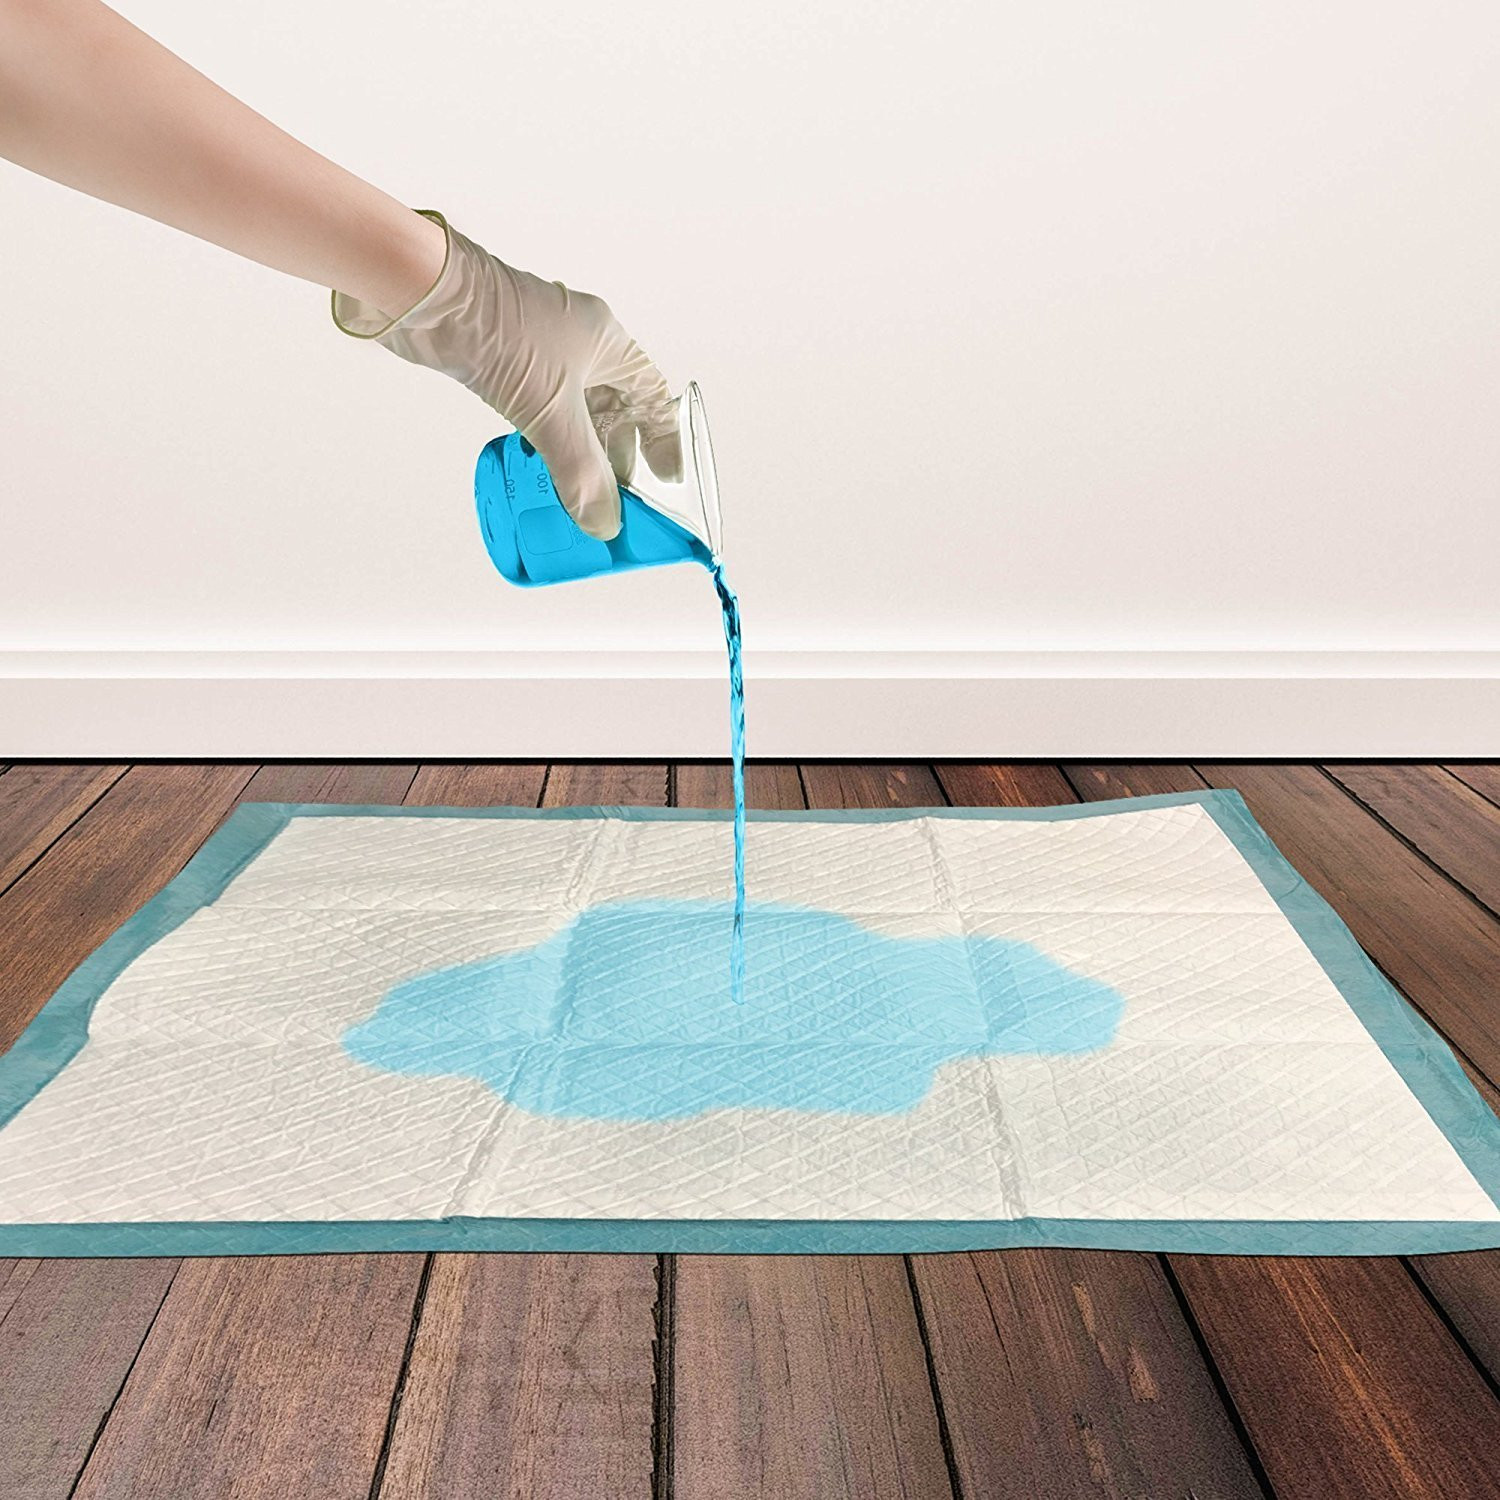 maxcare hardwood flooring reviews of simple solution 6 x layer dog and puppy training pads 100 pack regarding simple solution 6 x layer dog and puppy training pads 100 pack amazon co uk pet supplies